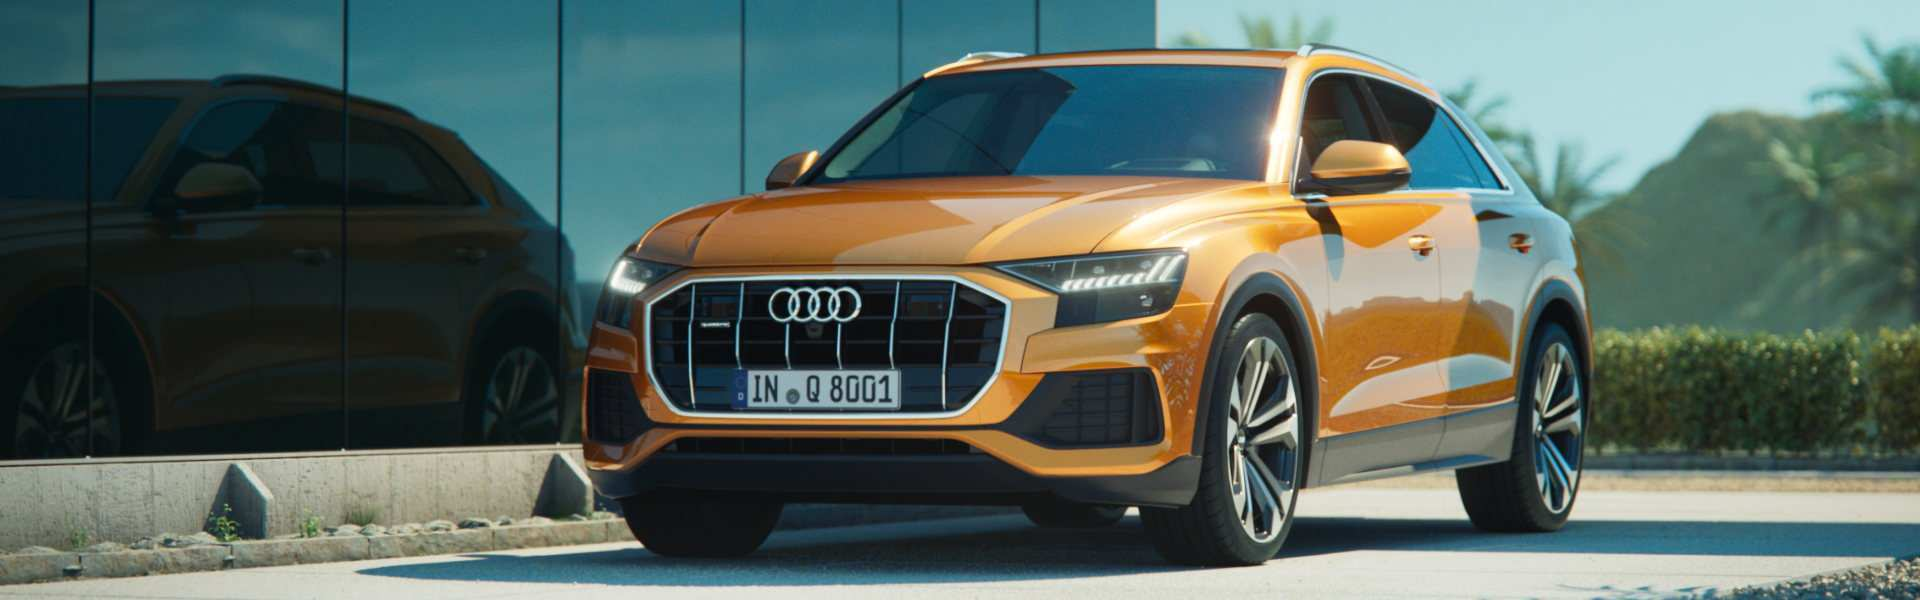 71 Best 2020 Audi Q8 Redesign And Review